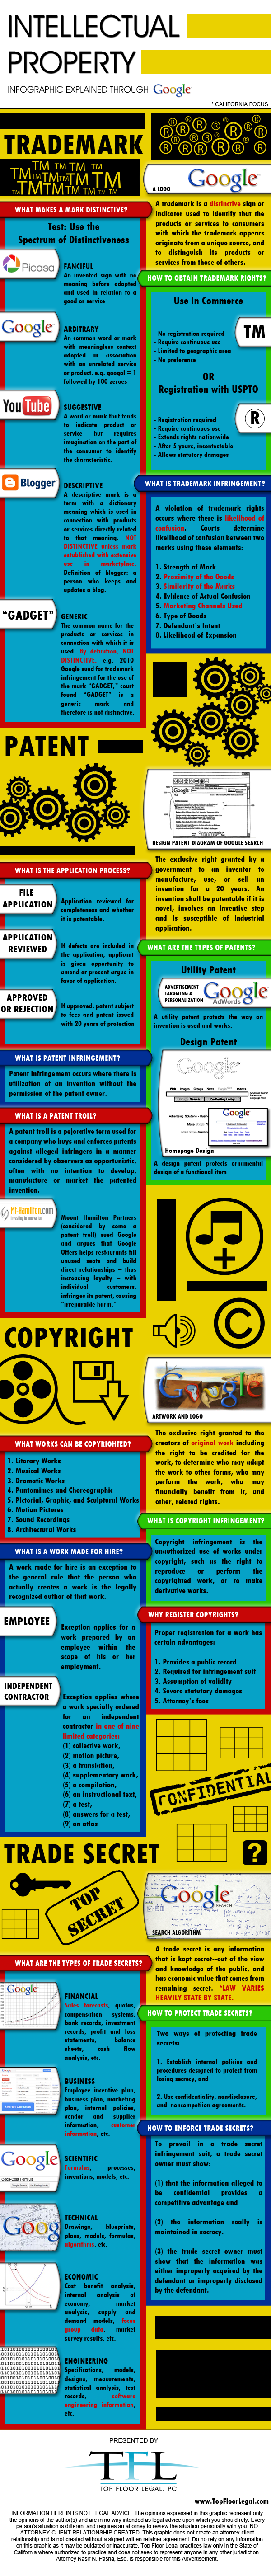 intellectual property explained via google infographic